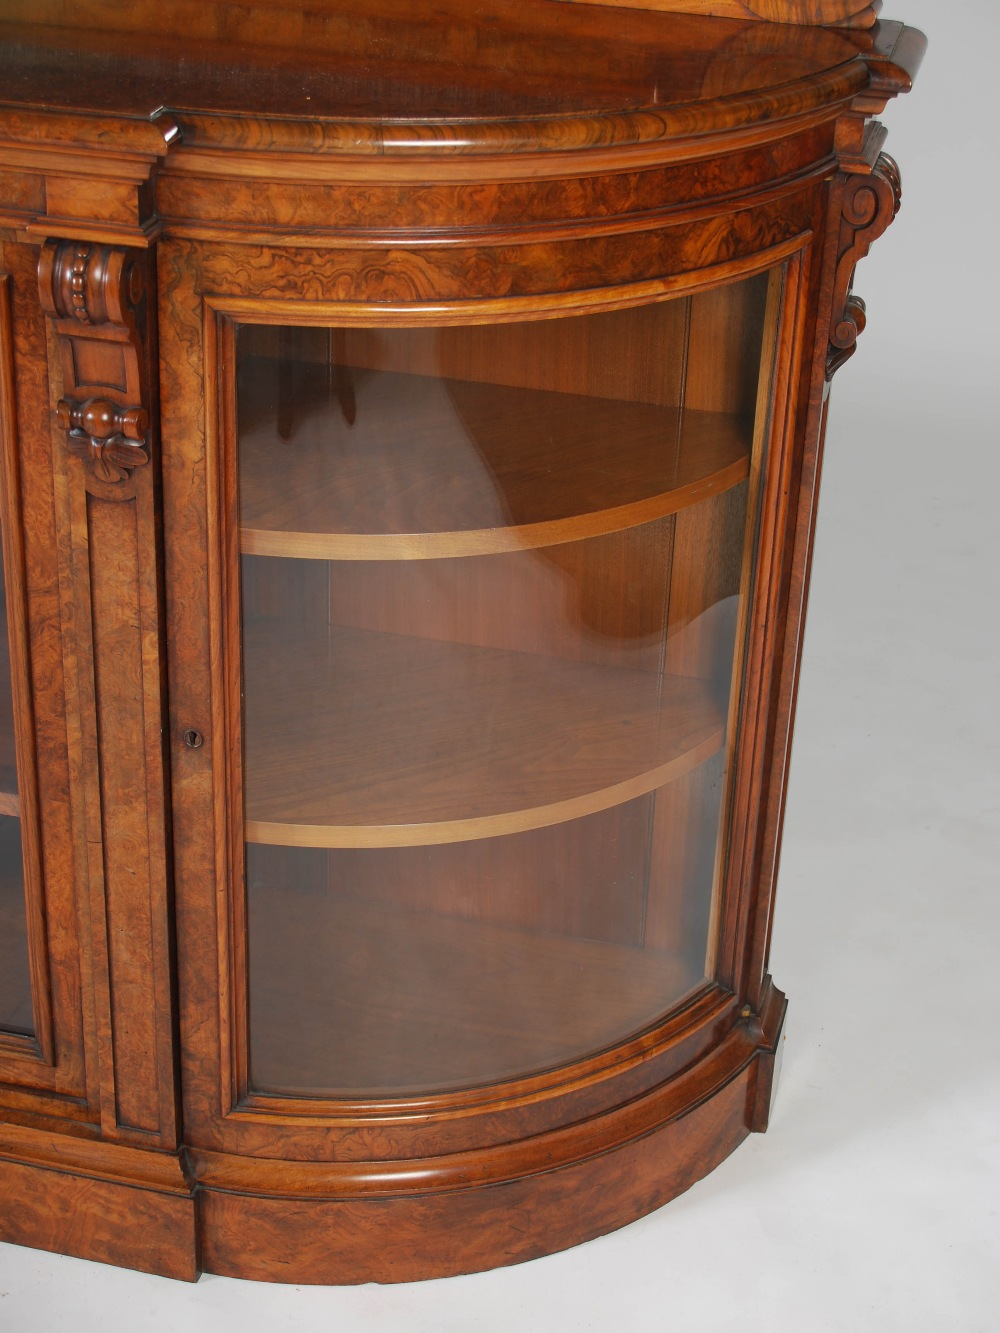 Lot 114 - A Victorian walnut mirror back credenza, the upright mirror back above a base fitted with a pair